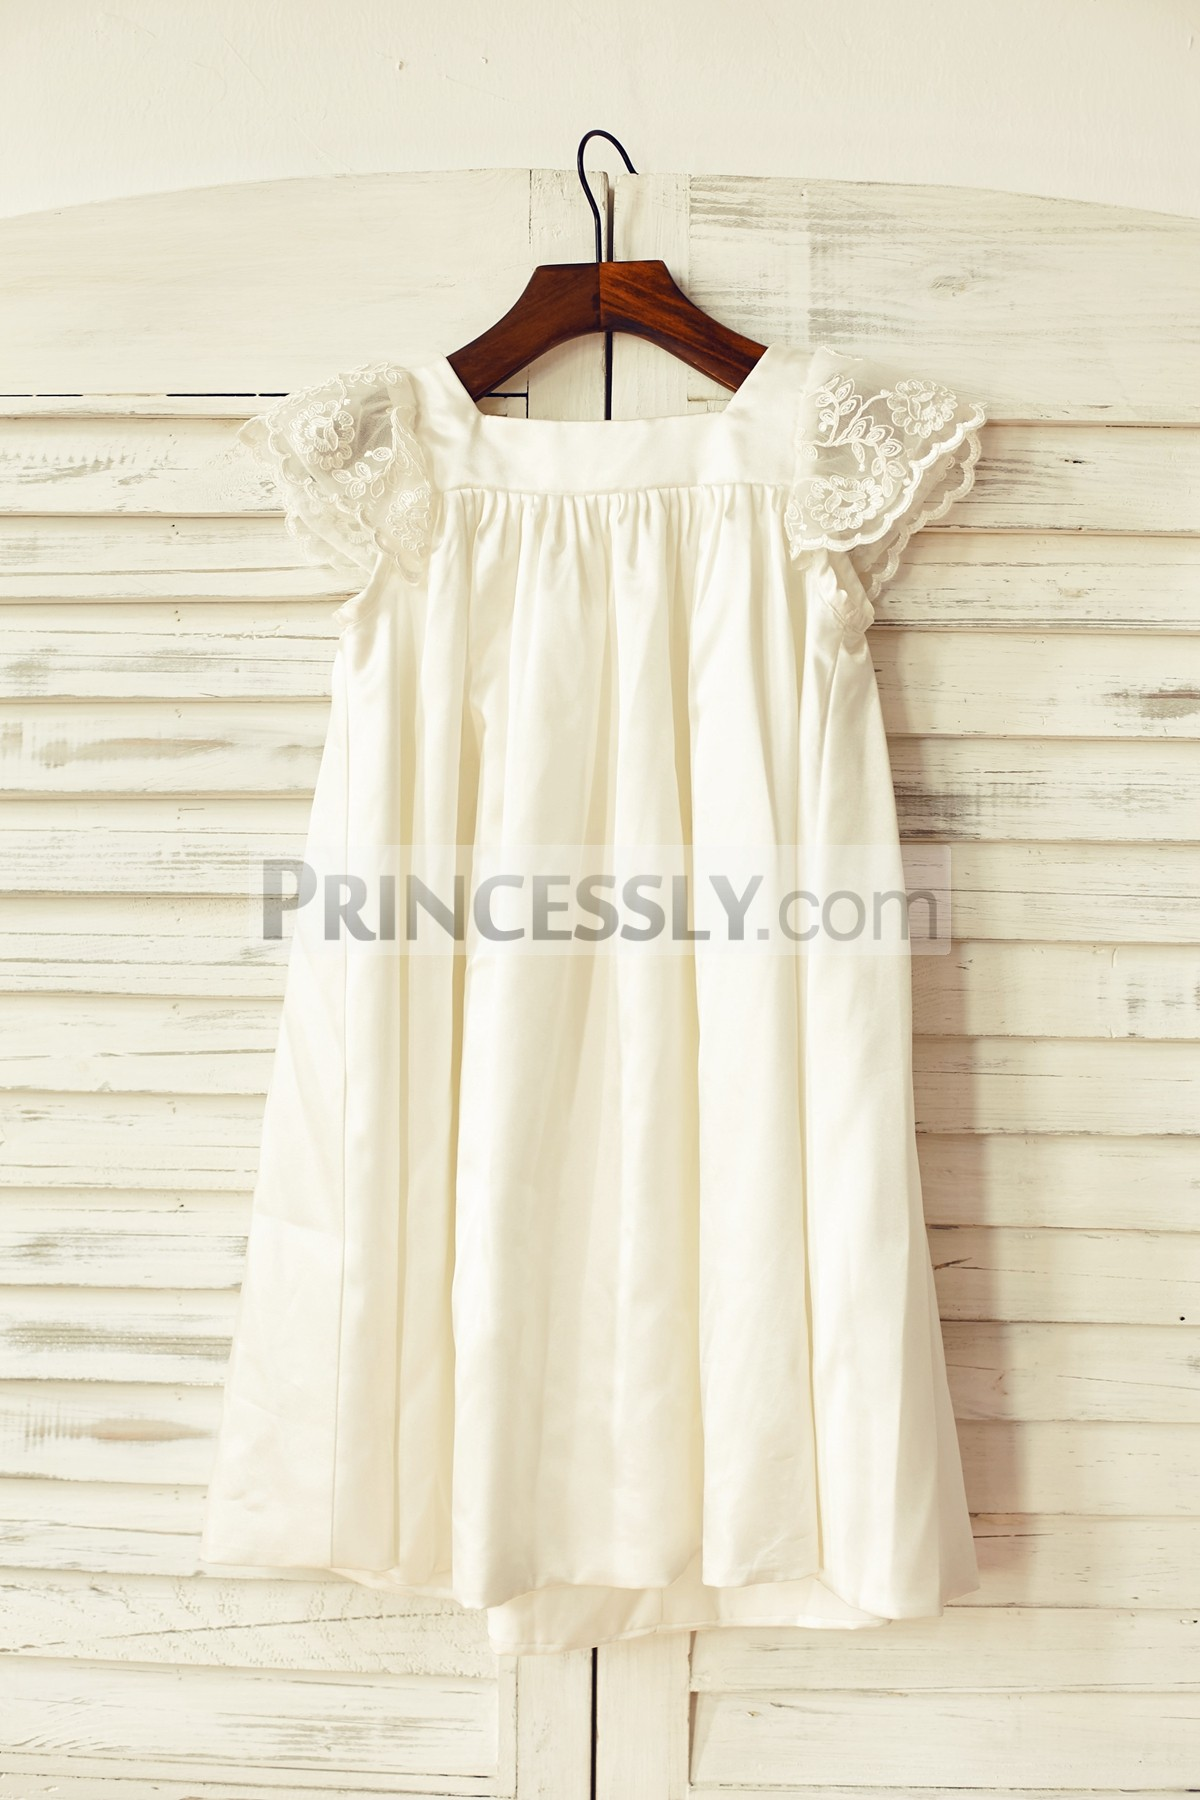 Princessly.com-K1000108-Ivory Satin Cap Sleeves Flower Girl Dress-31